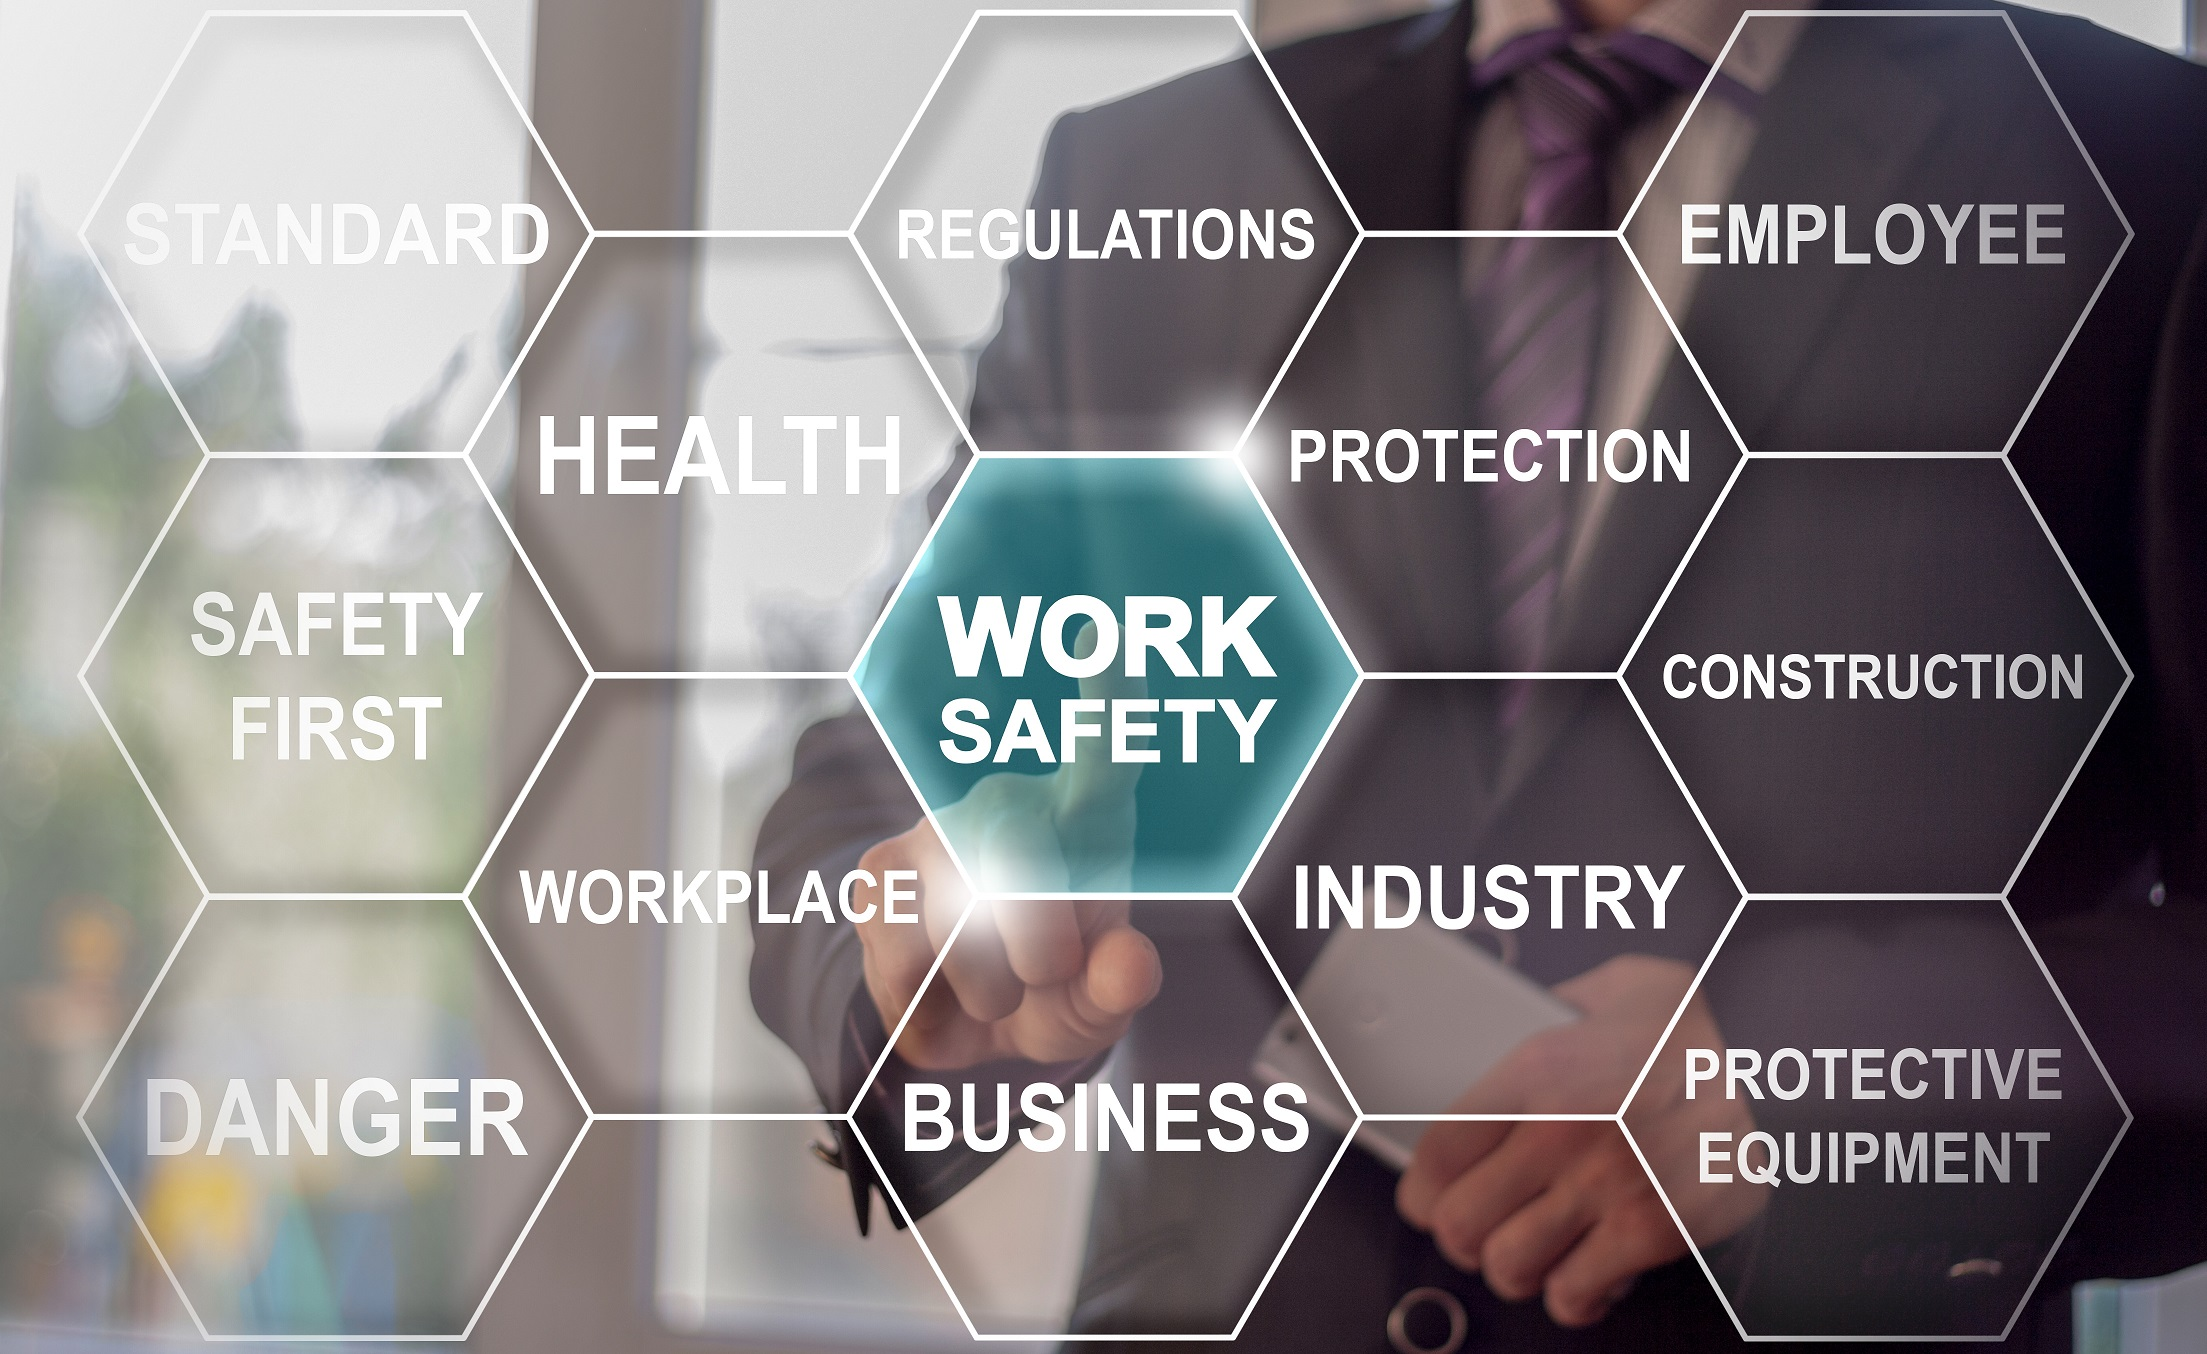 Behavior Based Safety – A Method to Improve Workplace Safety